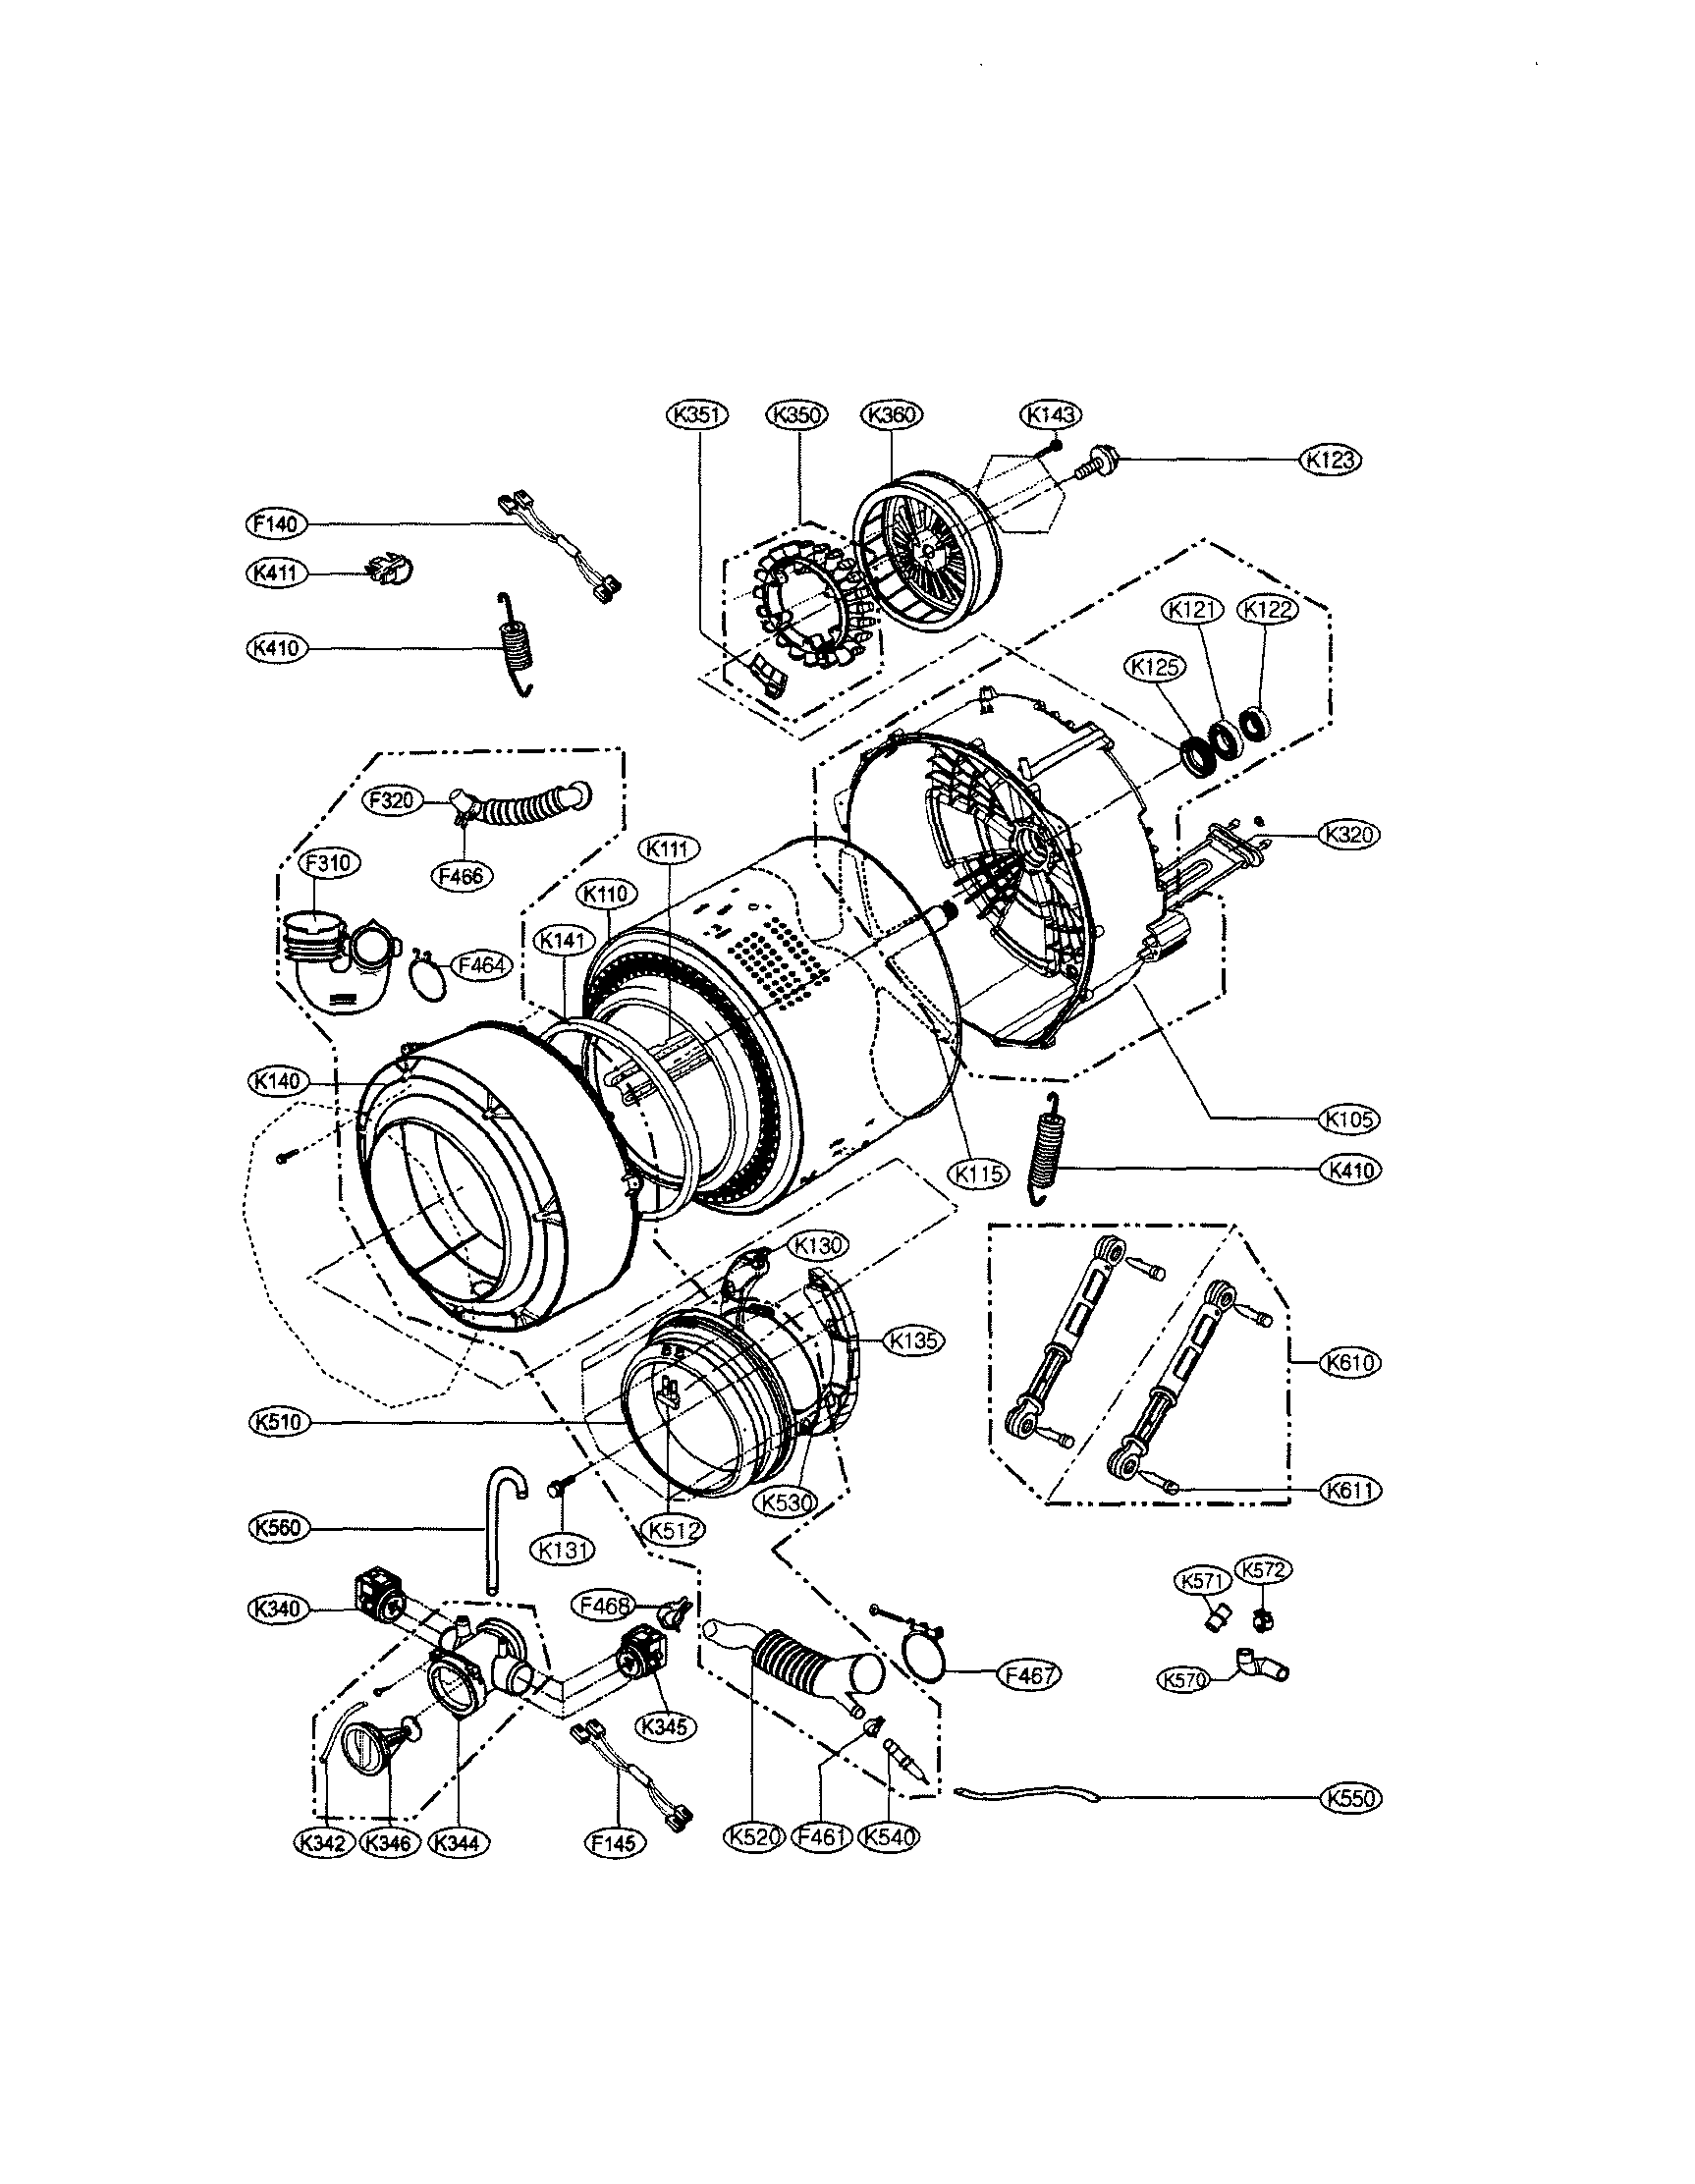 DRUM/TUB Diagram & Parts List for Model wm1355hr LG-Parts